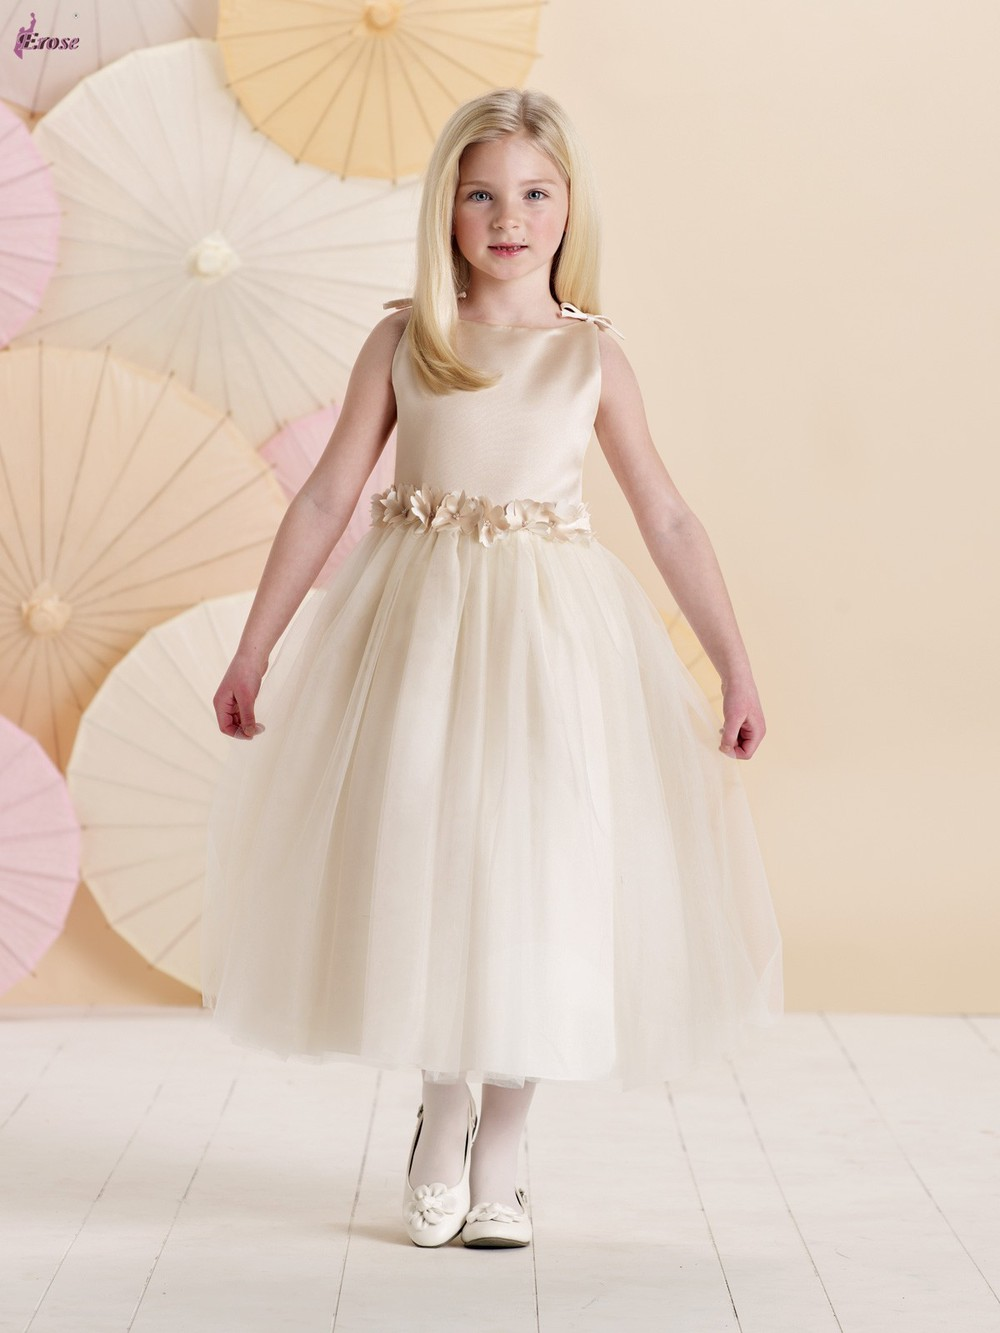 Flower girl dress patterns free buy flower girl dress patterns free